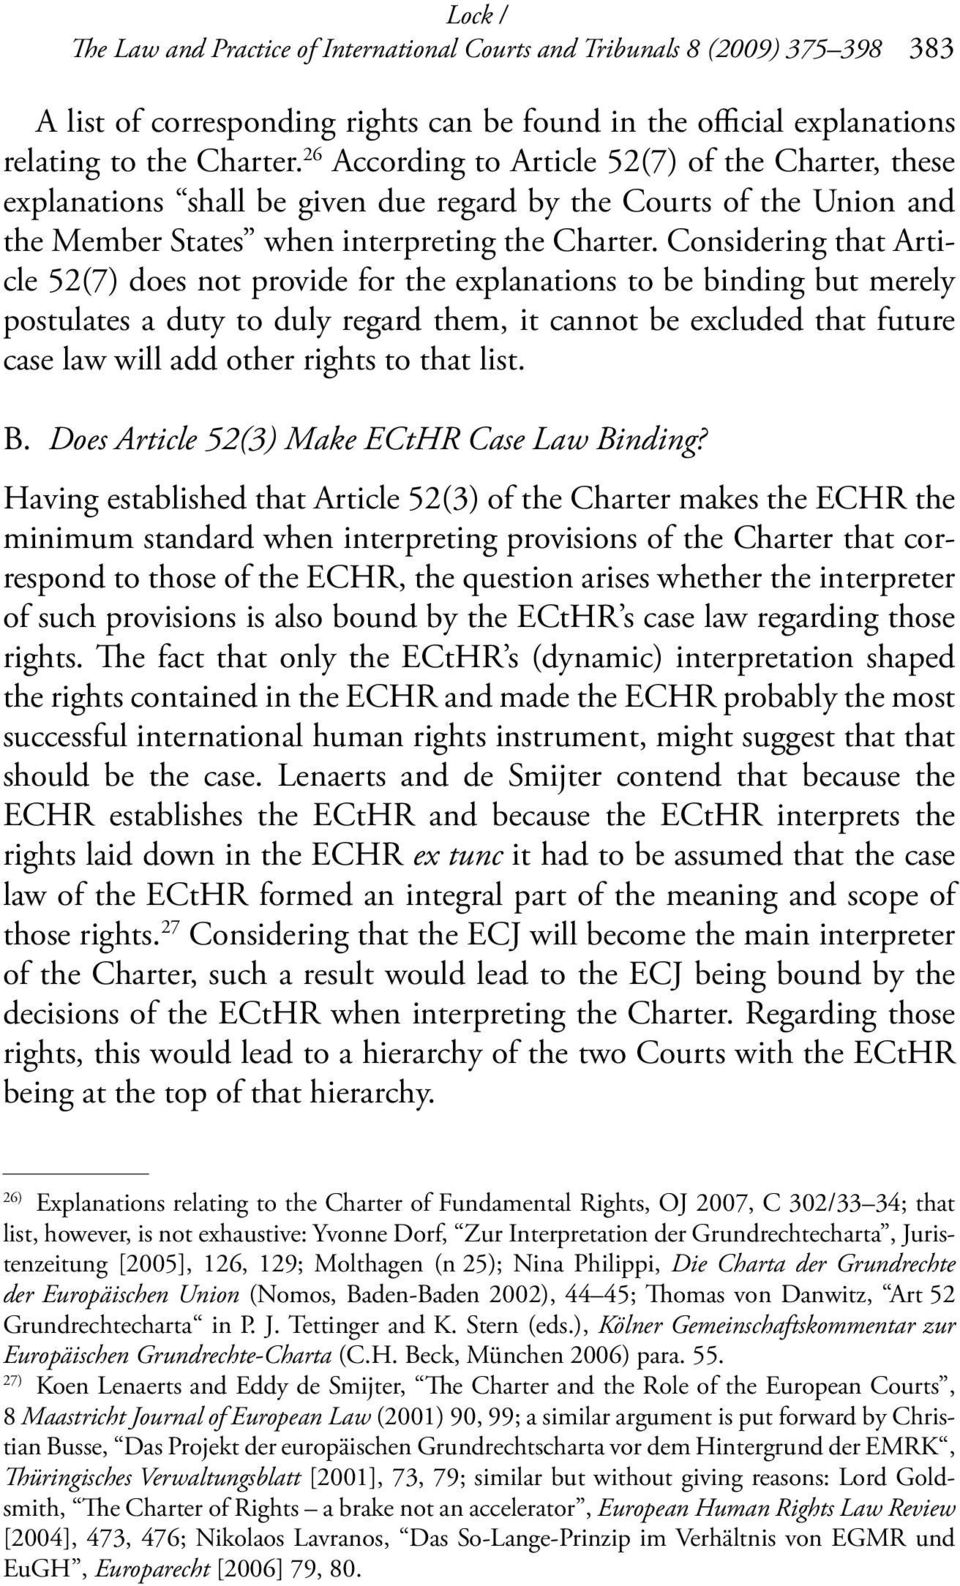 Considering that Article 52(7) does not provide for the explanations to be binding but merely postulates a duty to duly regard them, it cannot be excluded that future case law will add other rights